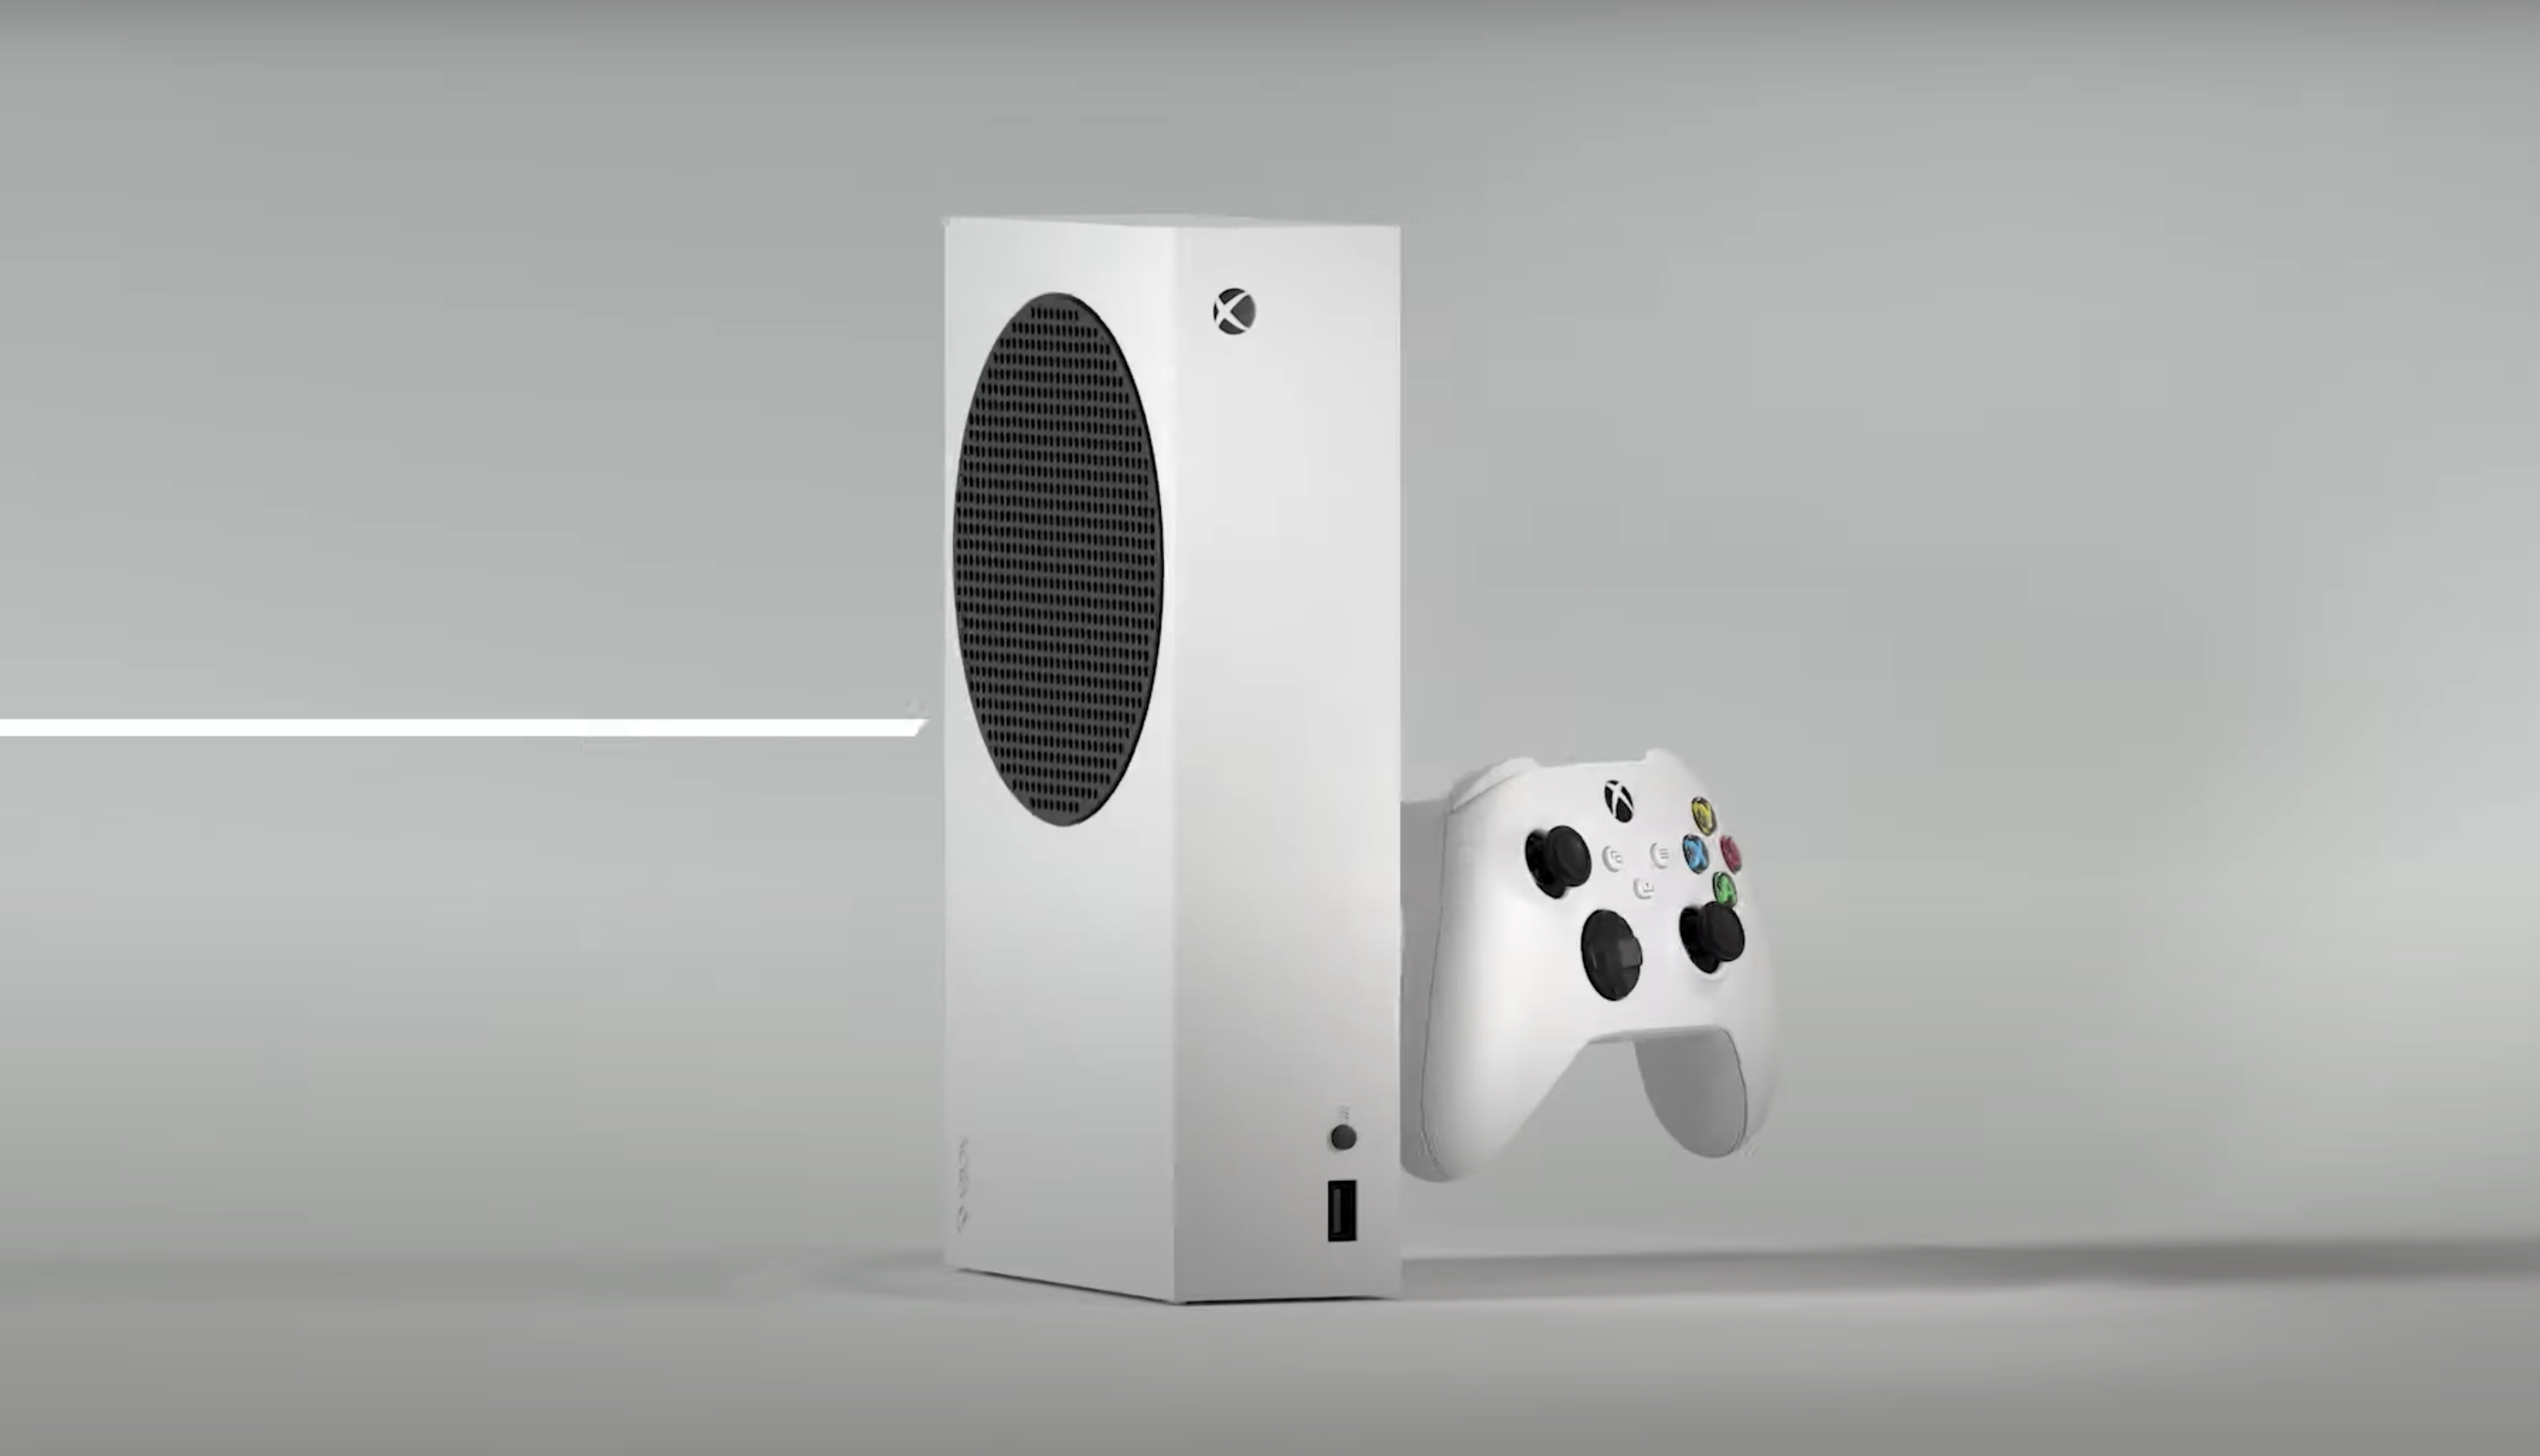 The Xbox Series S is much smaller than the Xbox Series X.